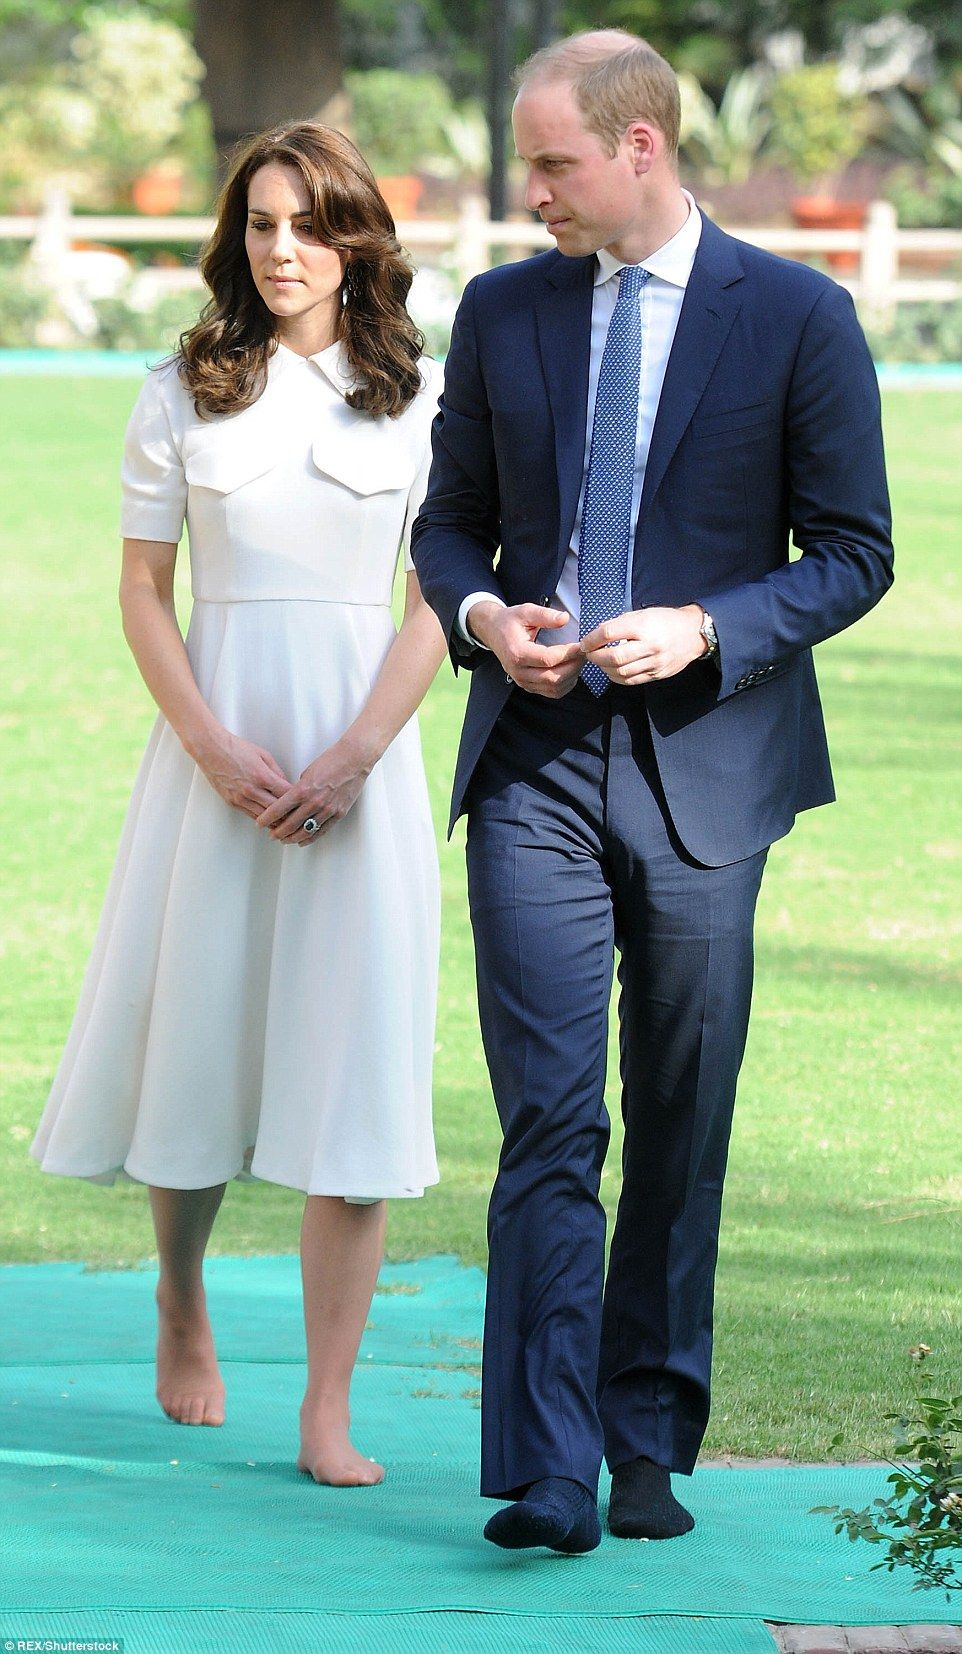 Duchess Of Cambridge Reveals Her Un Pedicured Toes In India Kate Middleton Feet Princess Kate Middleton Duchess Of Cambridge